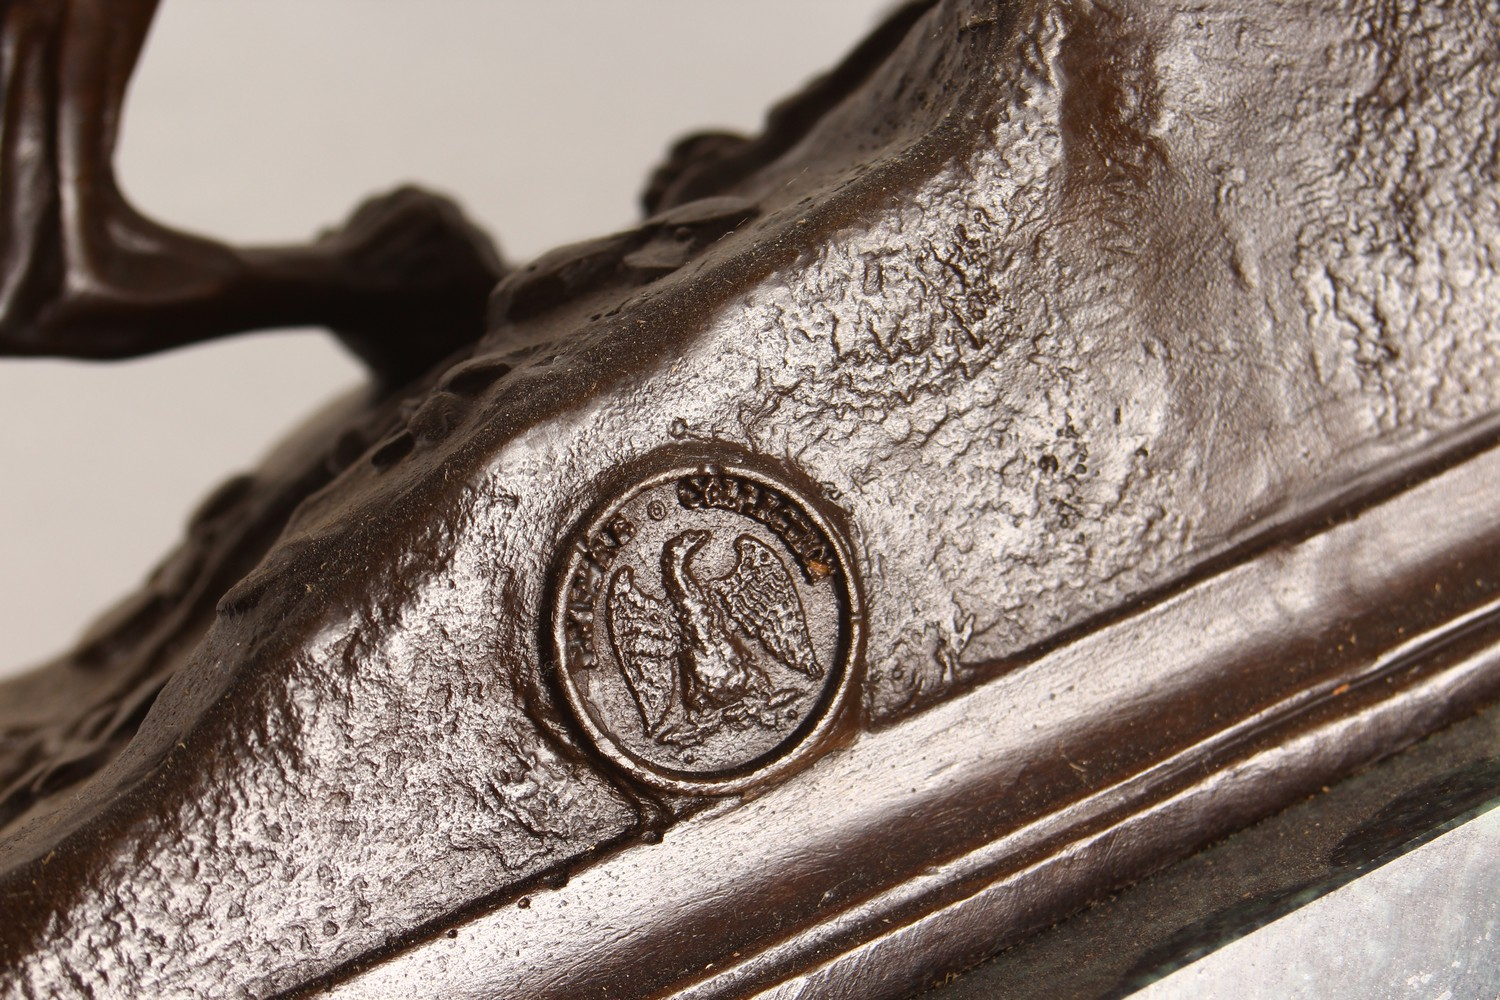 AN AMUSING BRONZE OF A DOG CHASING A RABBIT DOWN A RABBIT HOLE, on a rectangular marble base. 11. - Image 3 of 3